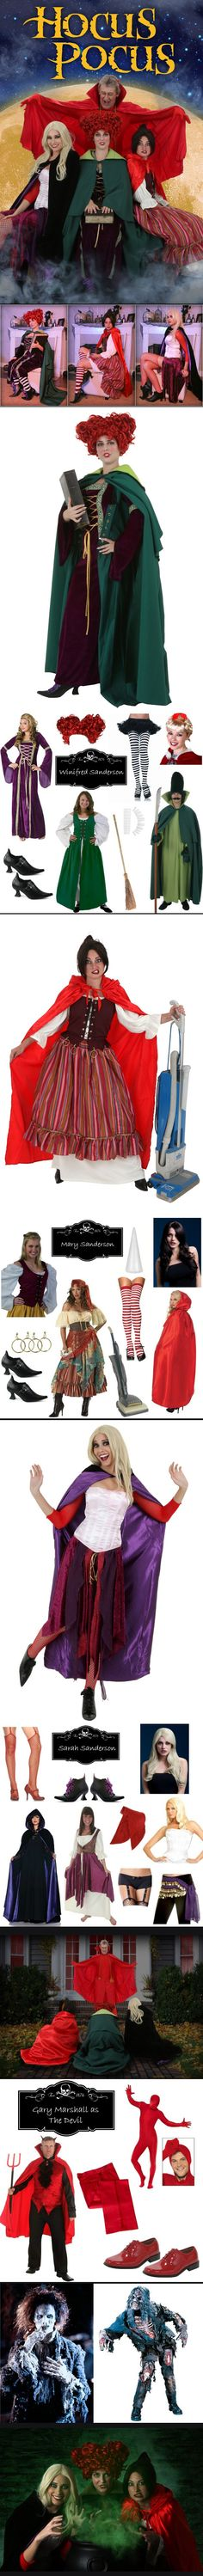 DIY Hocus Pocus Costumes Hocus pocus costumes, Costumes and Hocus - halloween group costume ideas for work